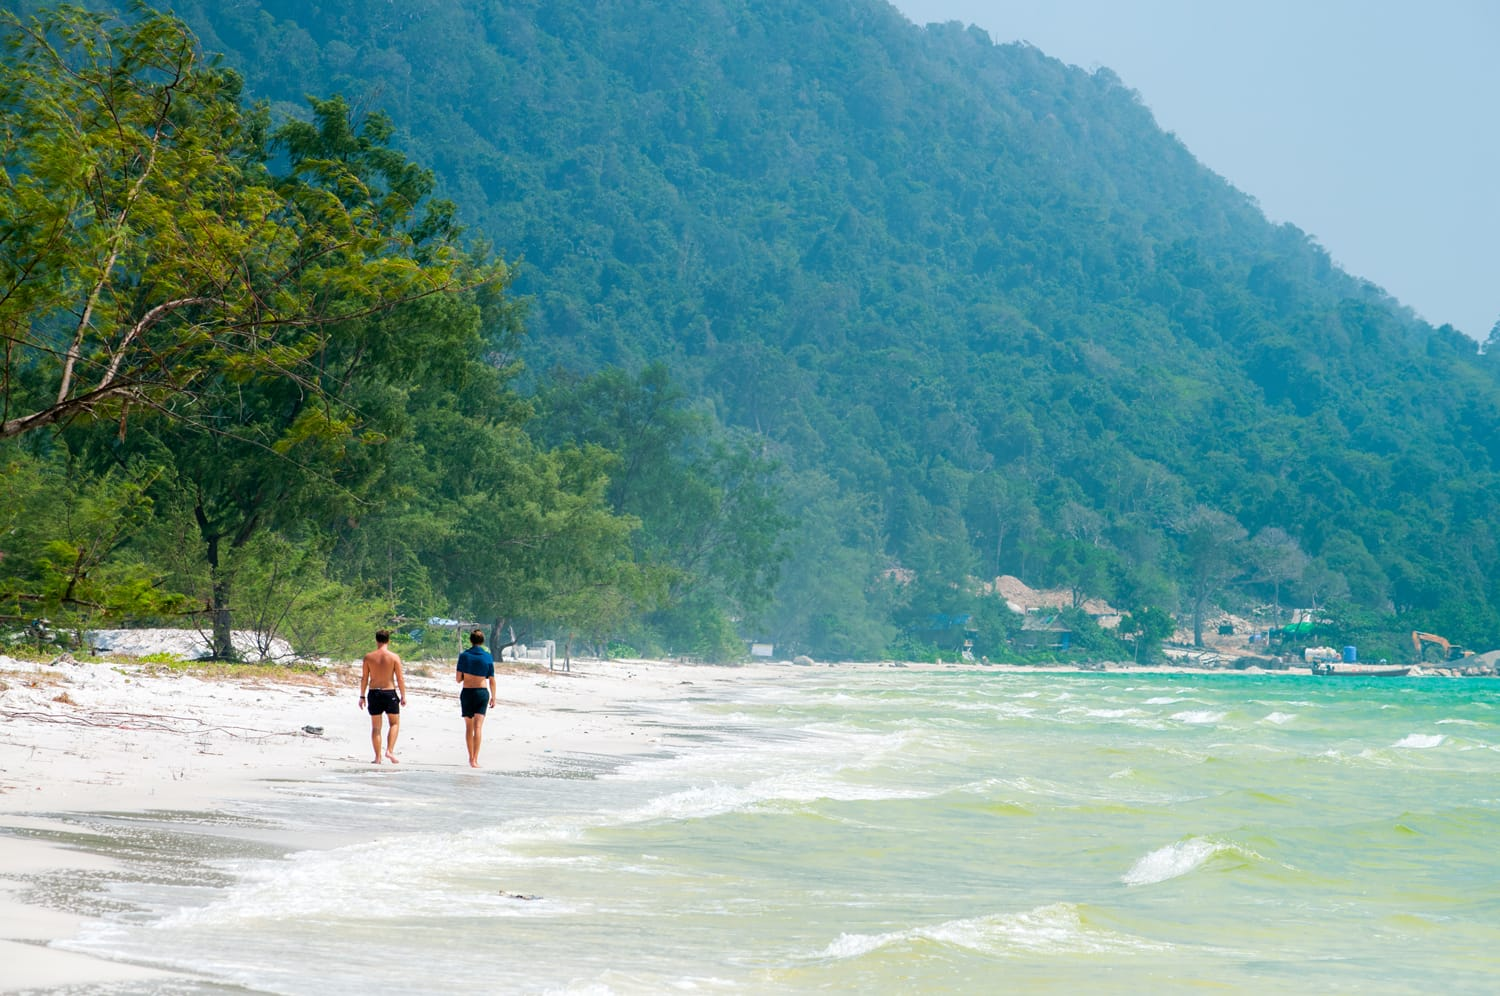 Long Beach is one of the most beautiful beaches in Koh Rong island, Sihanoukville, Cambodia.